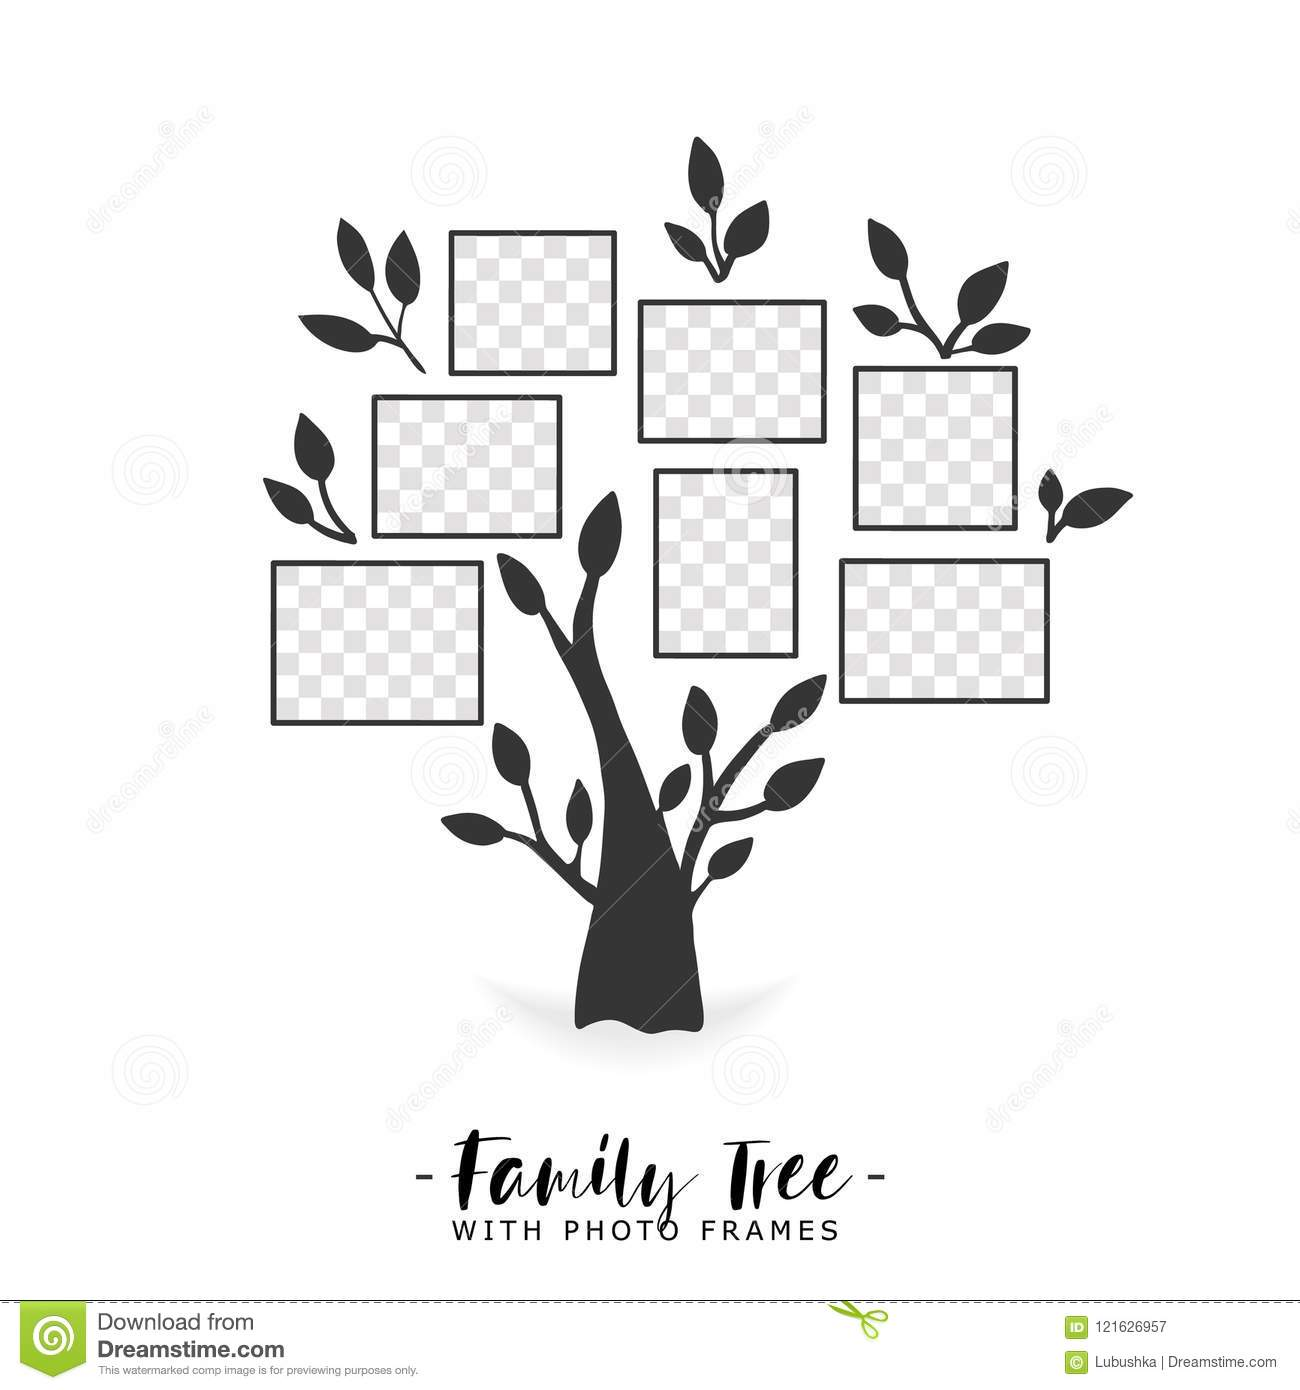 Family Tree With Photo Frames. Stock Vector - Illustration of ...